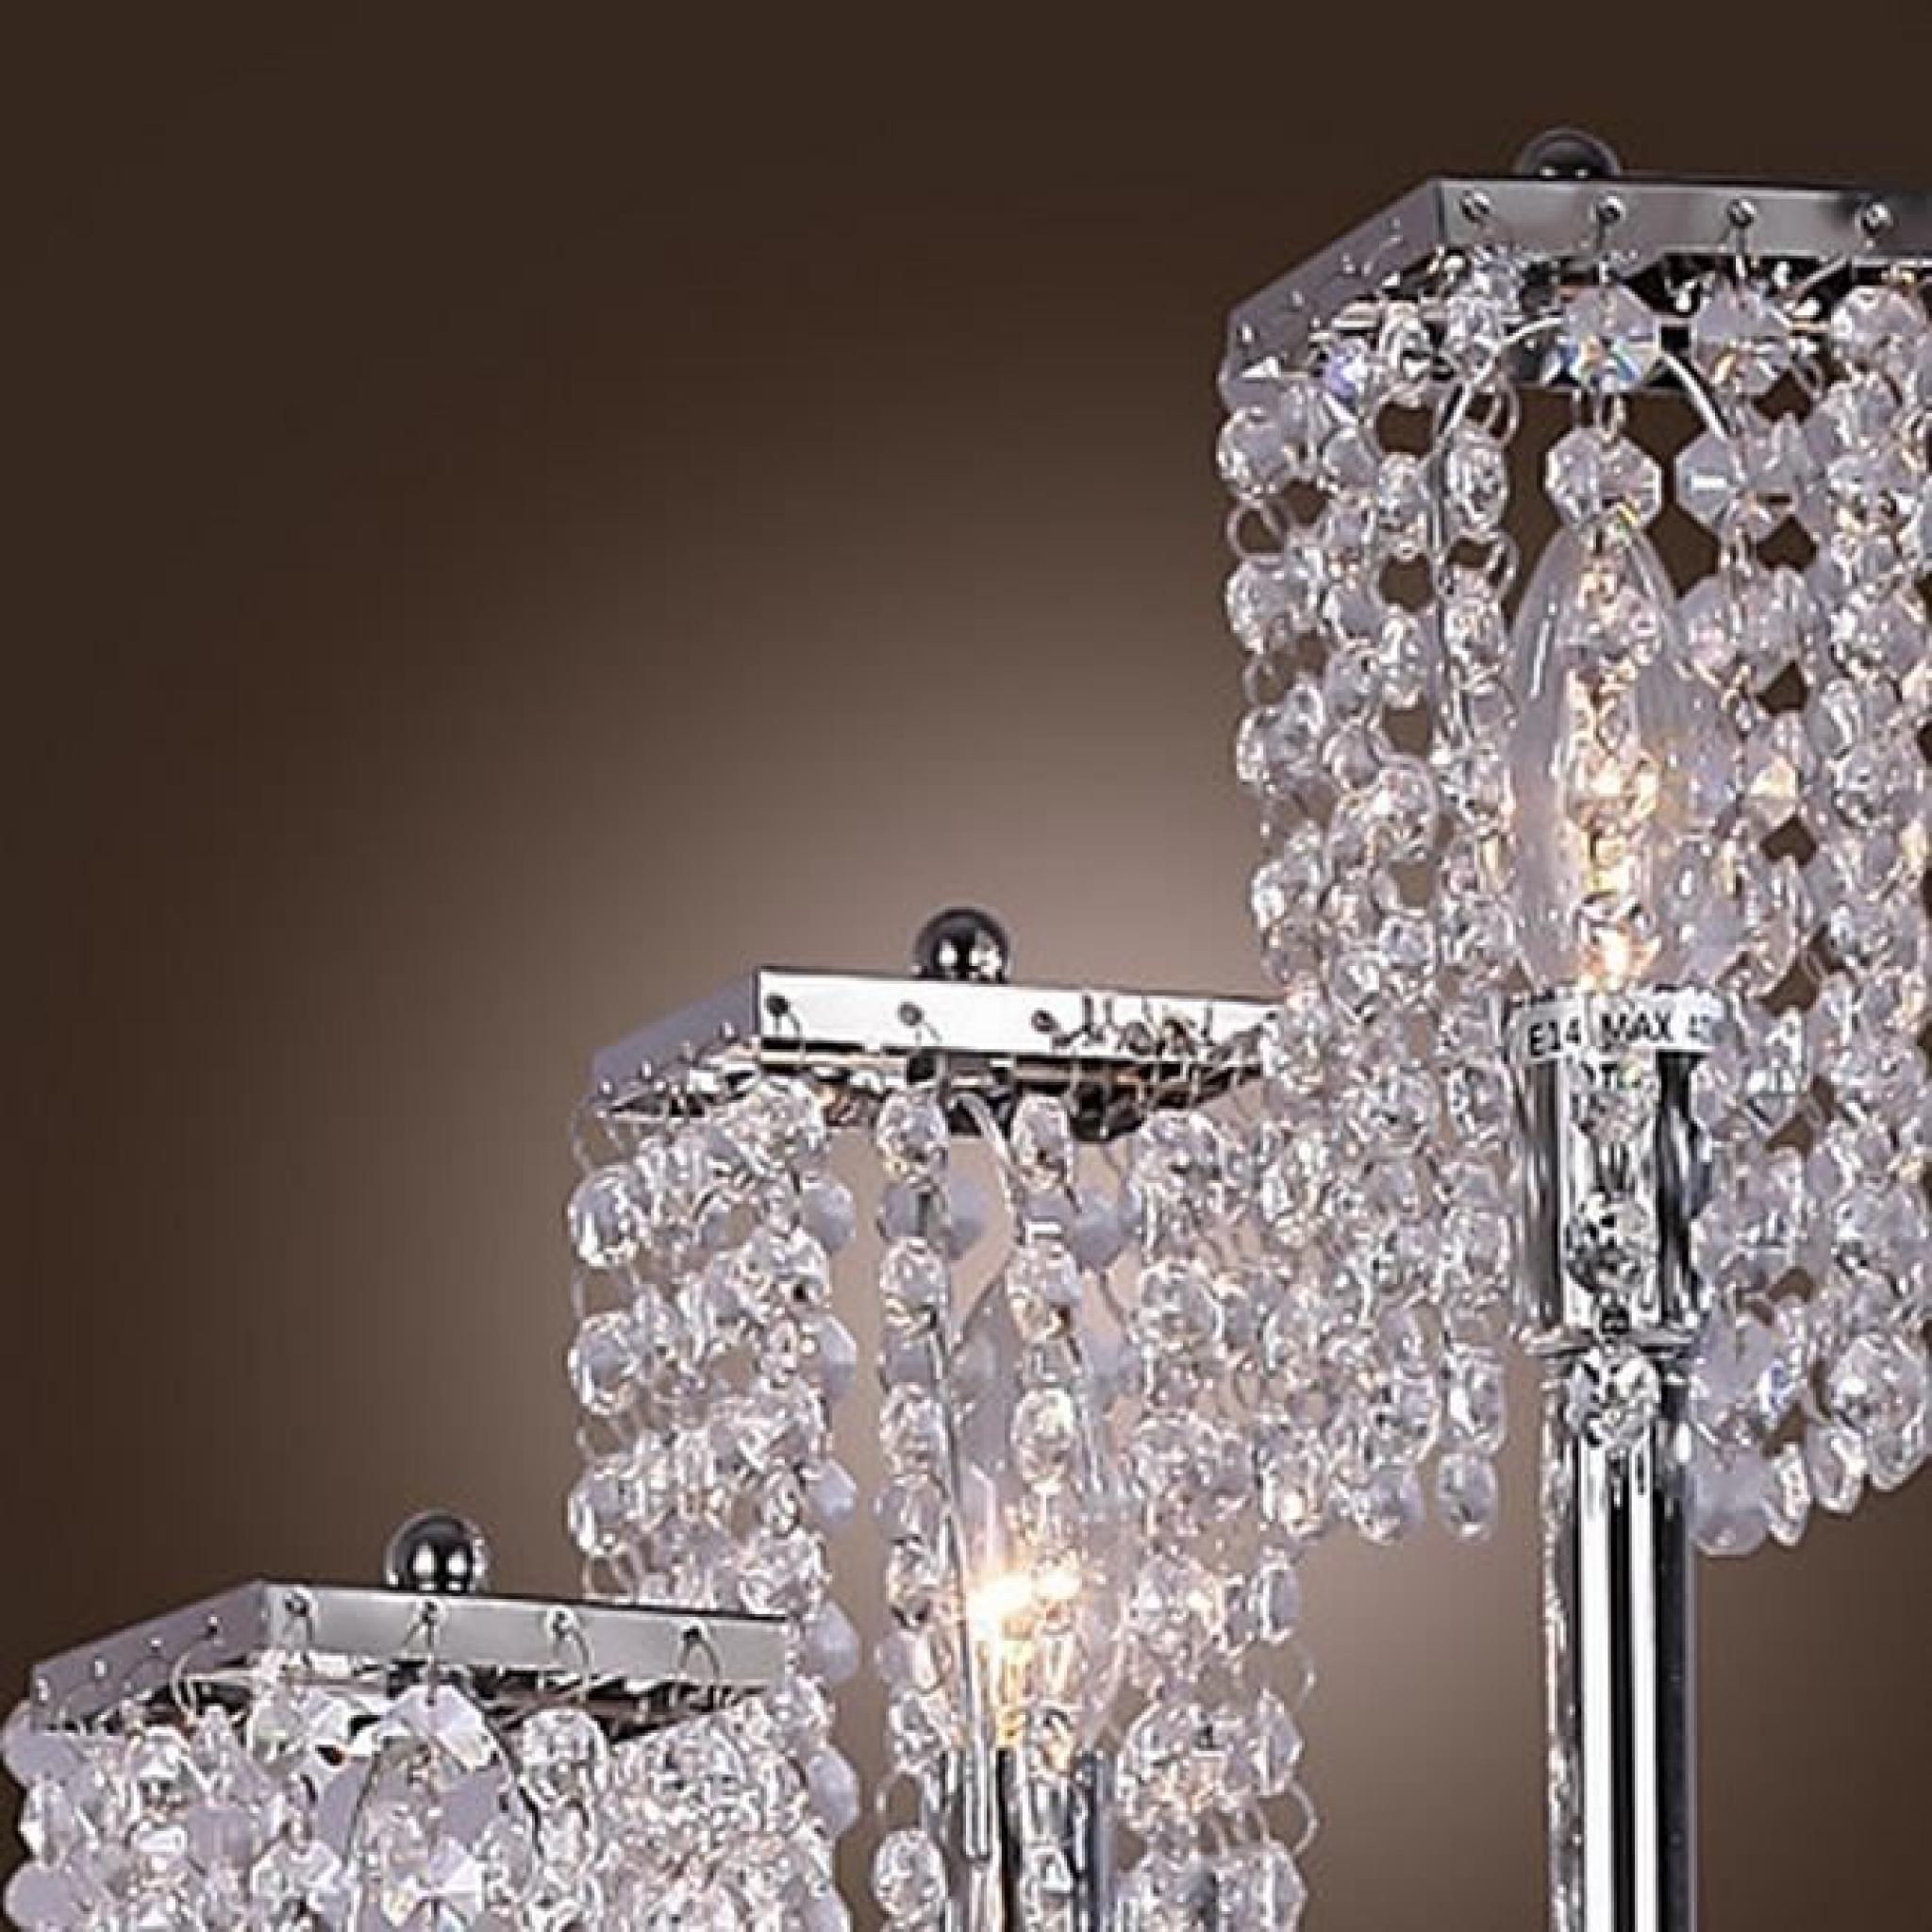 lampadaire en cristal tu achat vente lampadaire pas cher. Black Bedroom Furniture Sets. Home Design Ideas